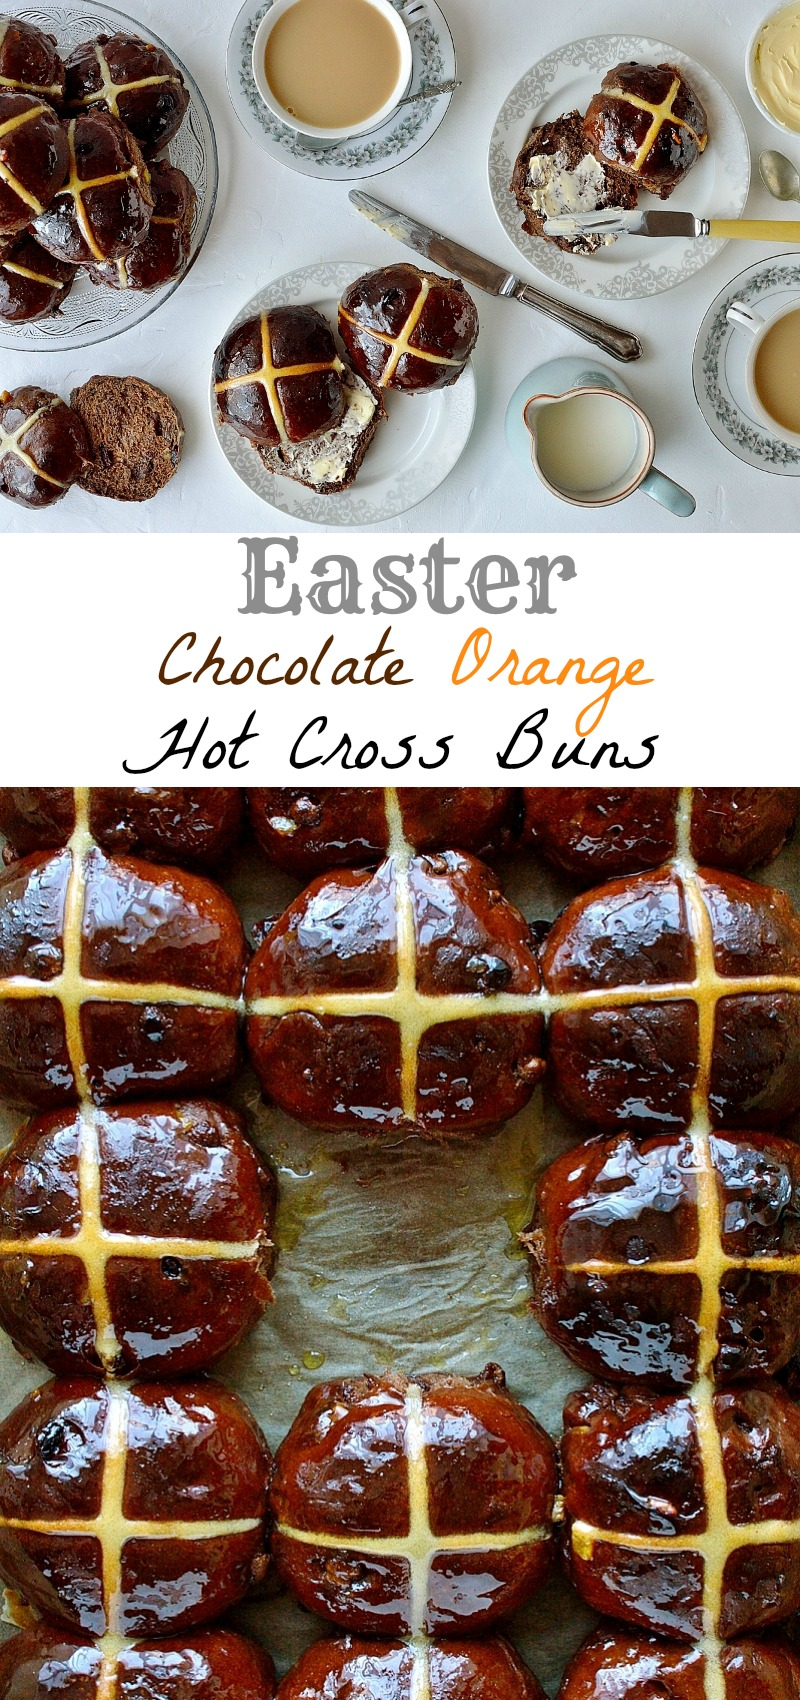 Chocolate orange hot cross buns pinterest